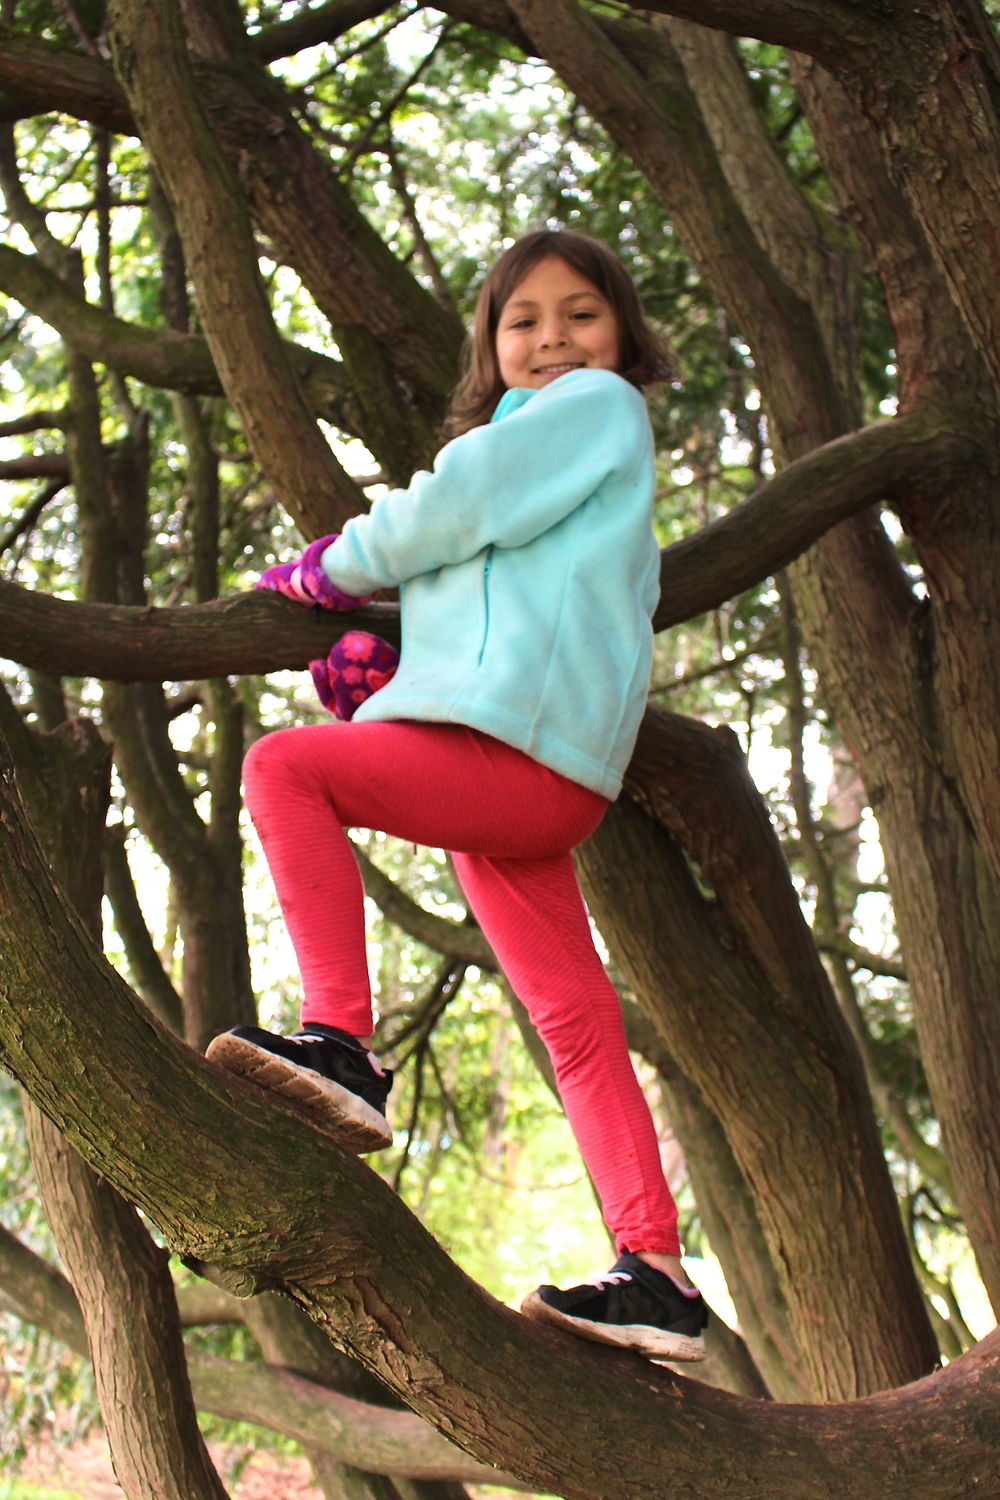 My five-year-old daughter had been talking for weeks about wanting to climb a tree. The Zoom tree was just what she needed!